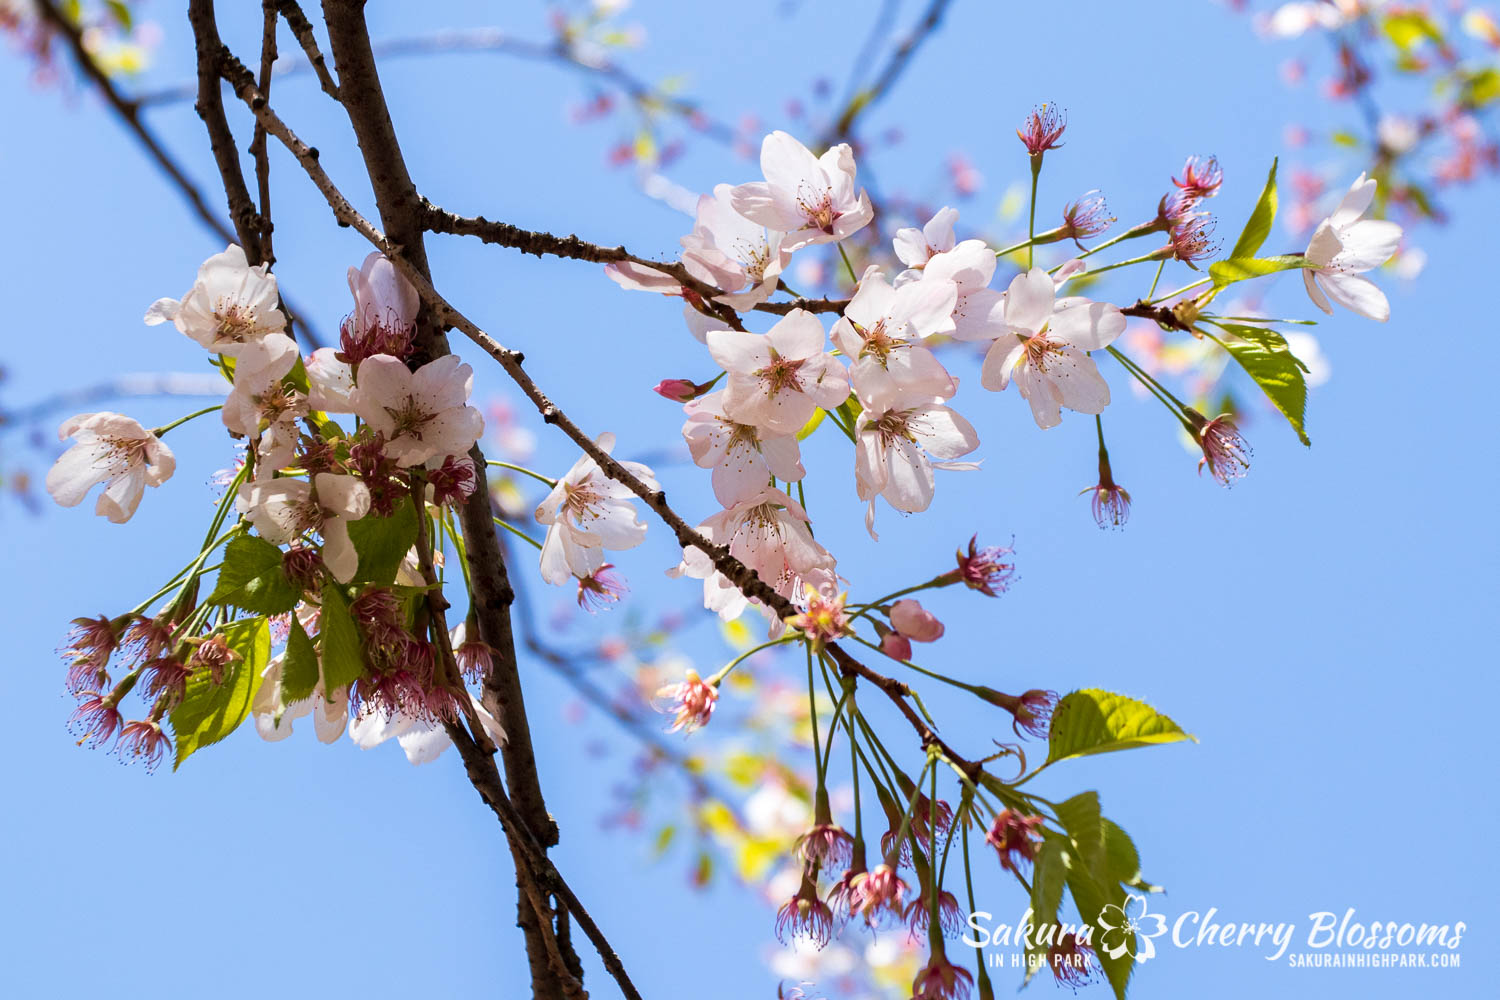 sakura watch may 21-2019-40.jpg